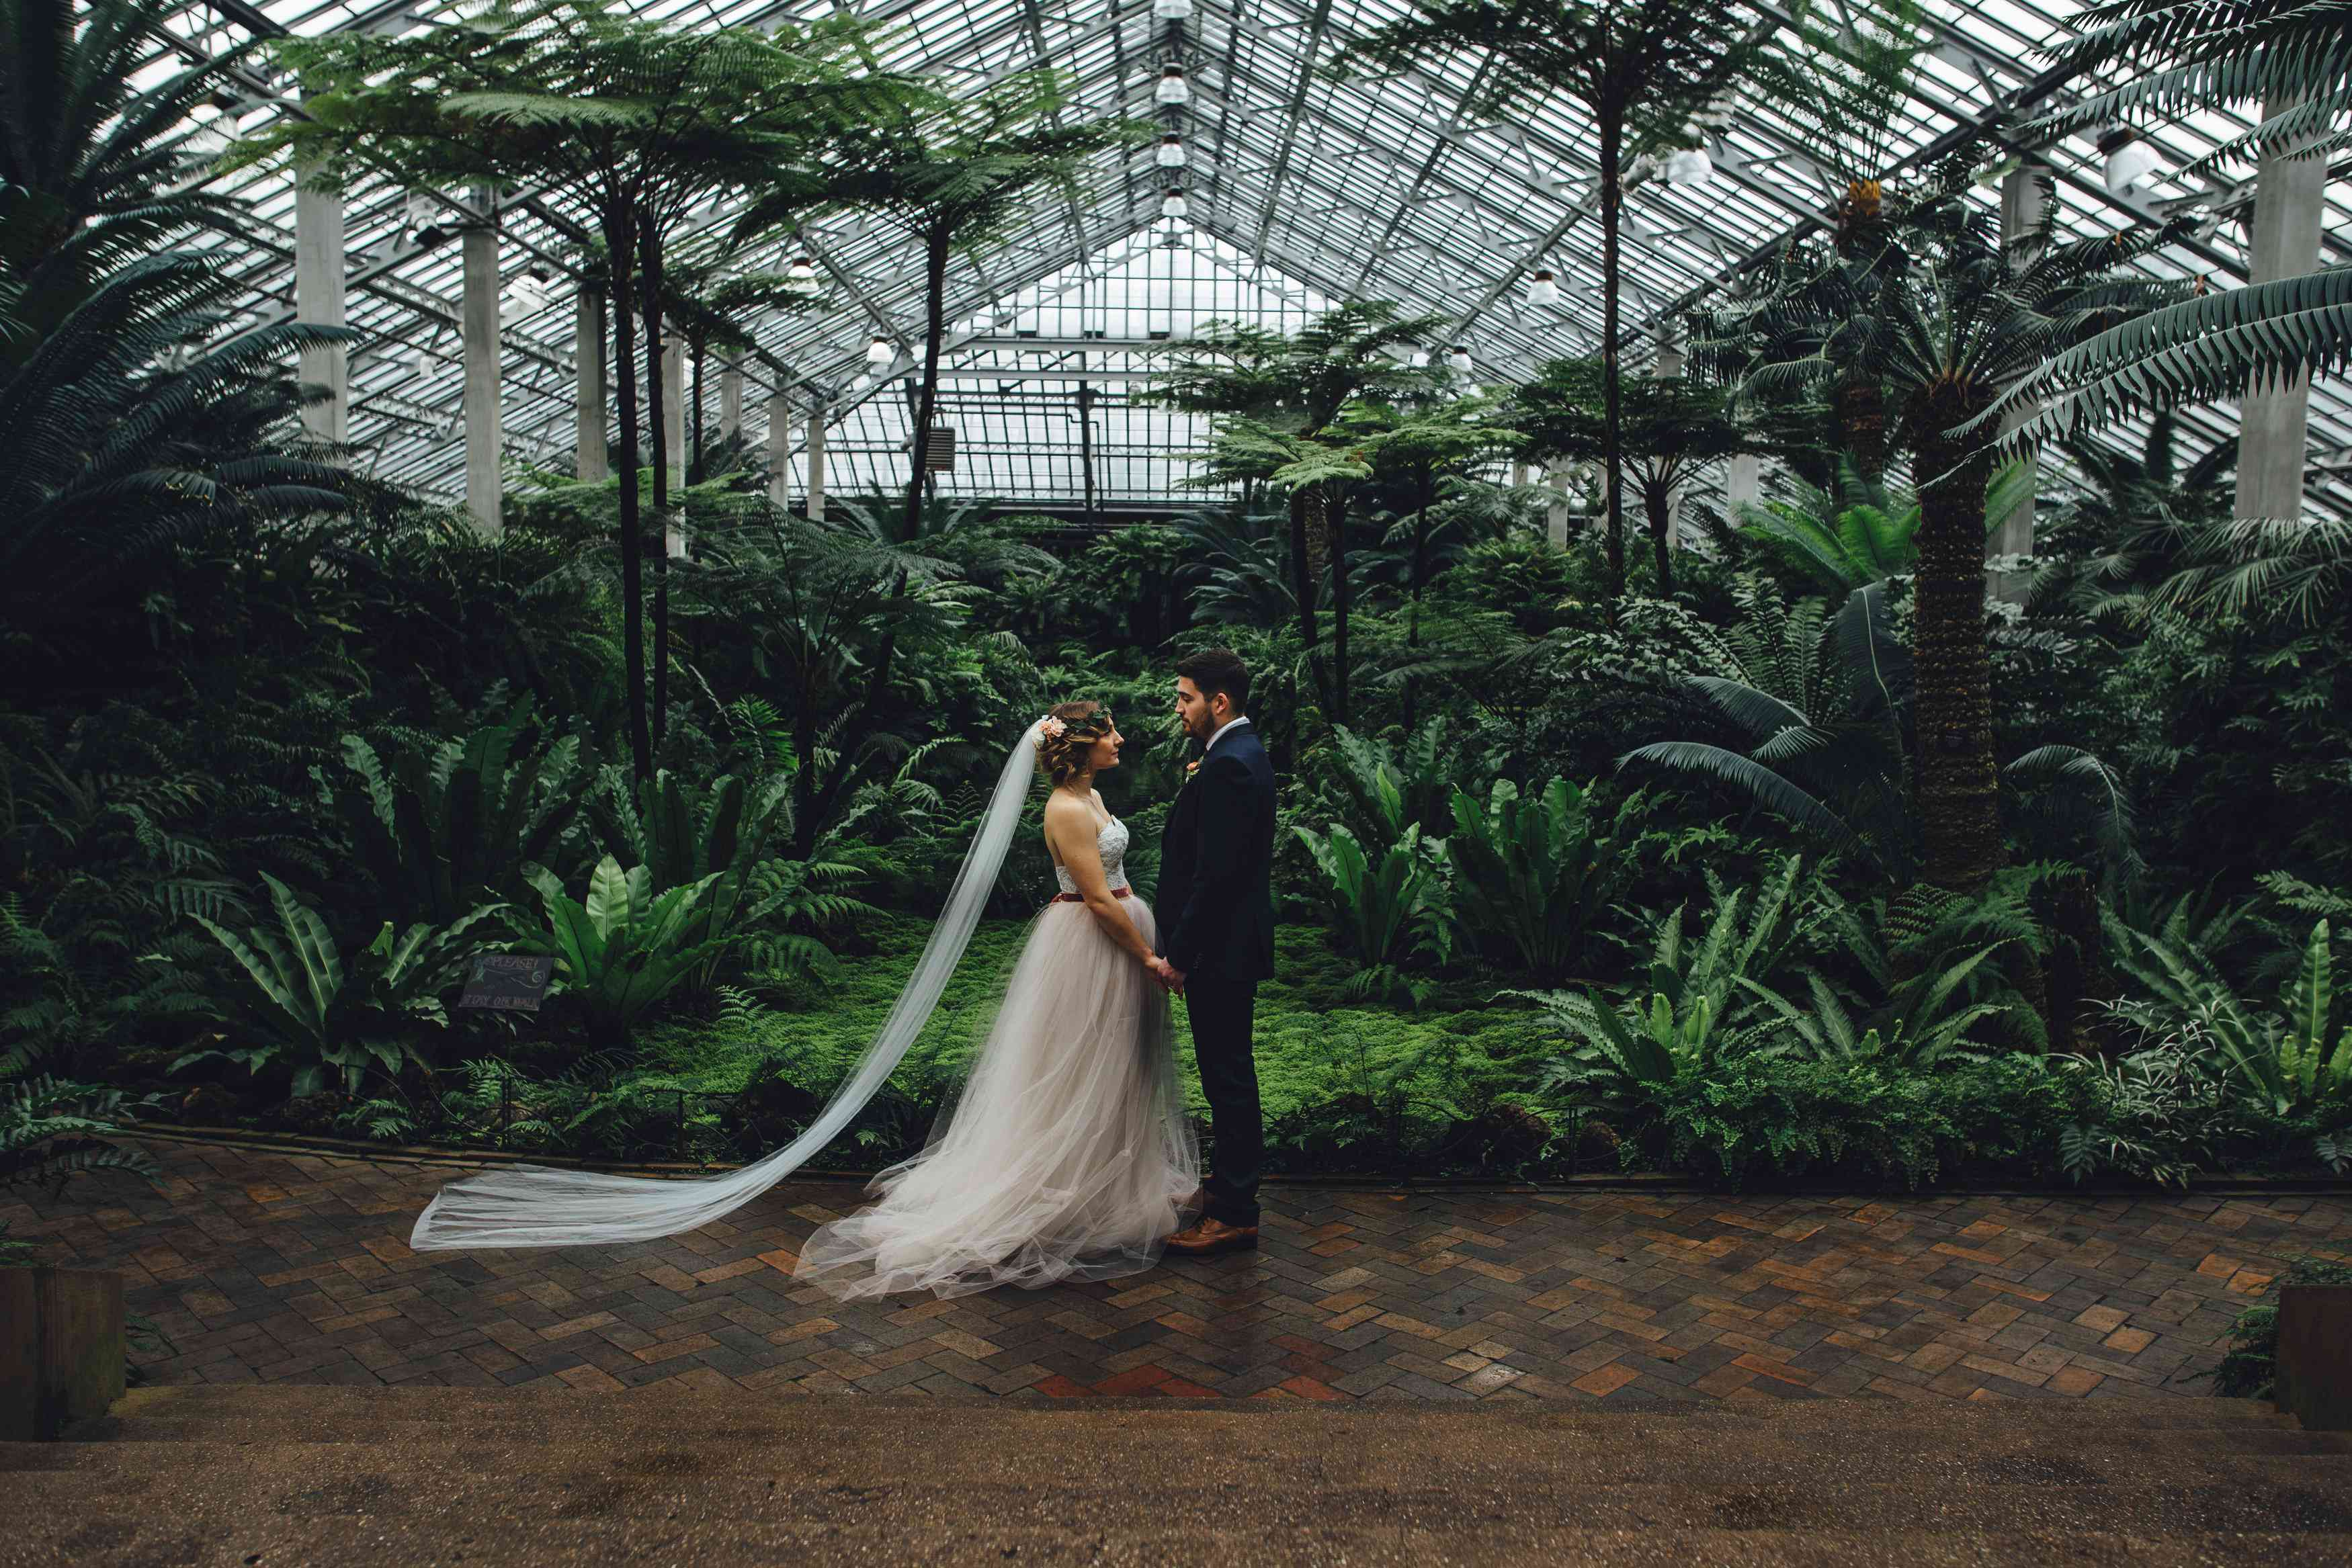 Couple posing in a greenhouse at Garfield Park Conservatory in Illinois